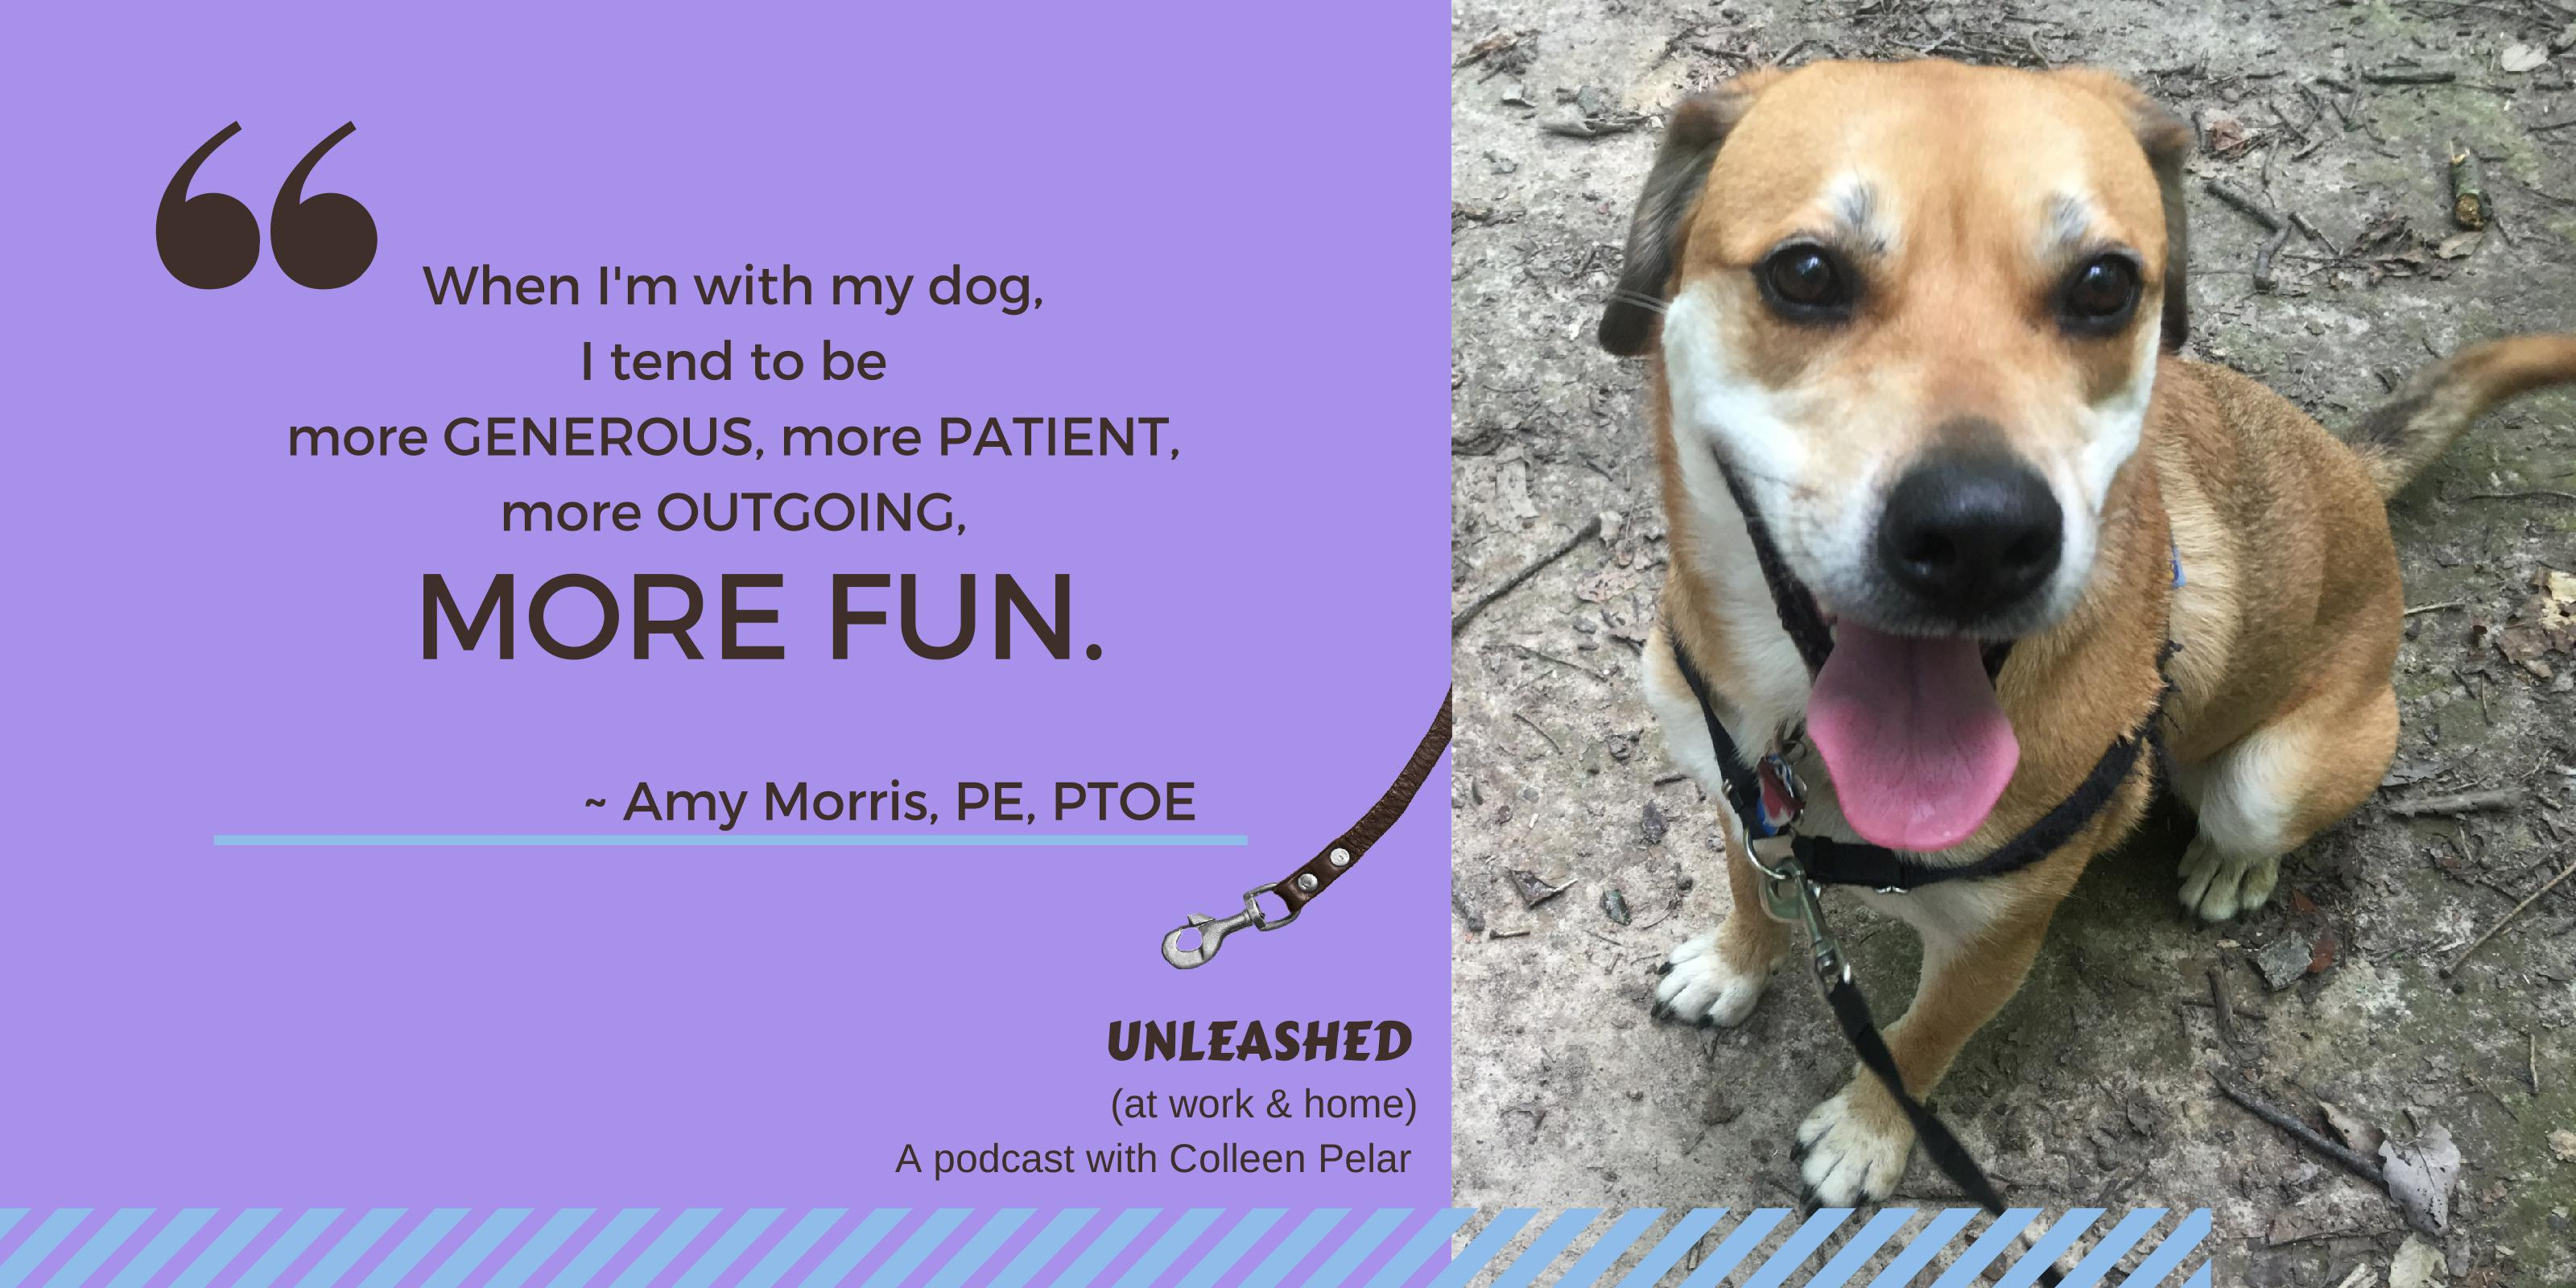 Amy Morris, PE, PTOE, is president of T3 Design, transportation engineering company dedicated to solving traffic problems. She talked with Colleen Pelar on the UNLEASHED (at work & home) podcast about why problem-solving isn't as clear-cut as many think and shared tips for improving your problem-solving skills. Another fascinating look at the behavior of dogs and of people.